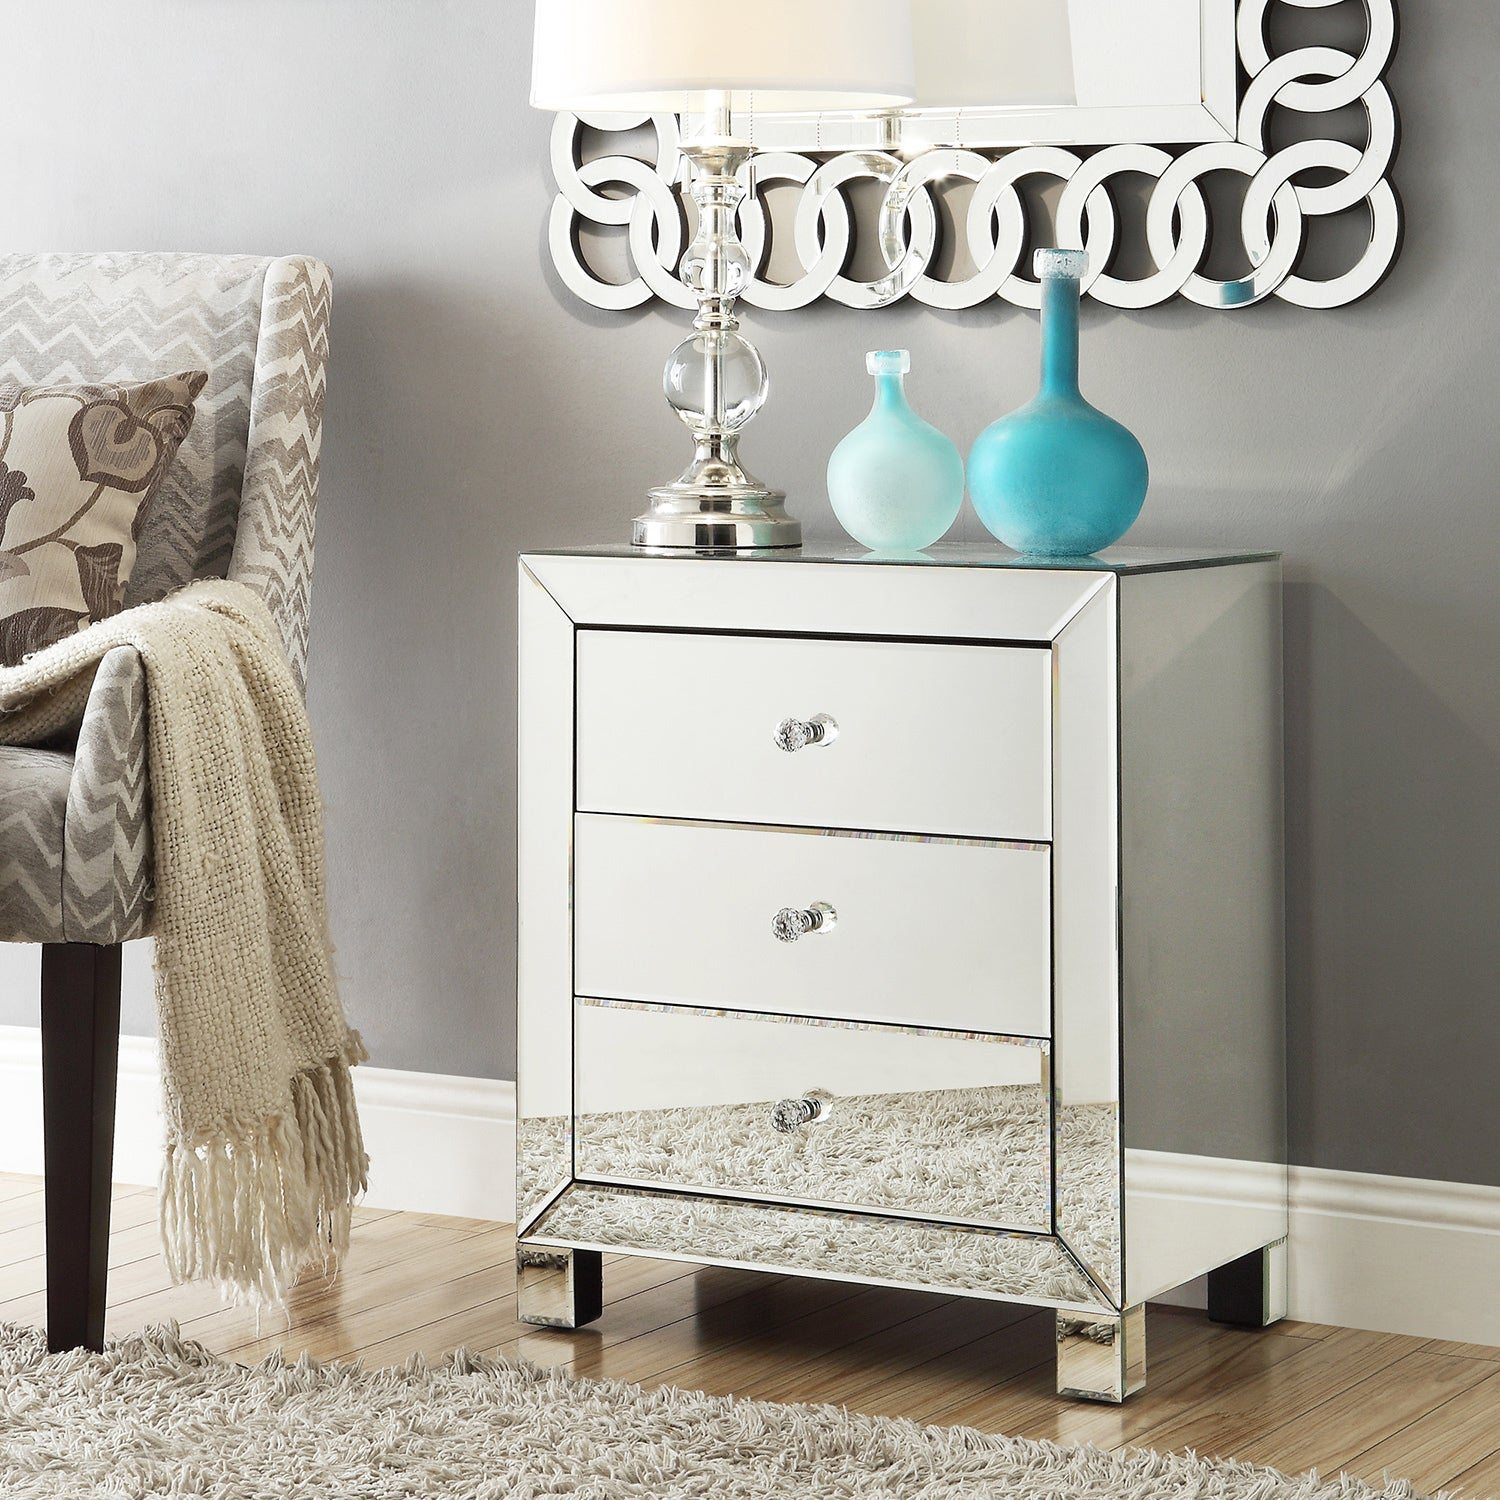 Esmond Mirrored 3-drawer Accent Table by iNSPIRE Q Bold - Free Shipping  Today - Overstock.com - 15696209